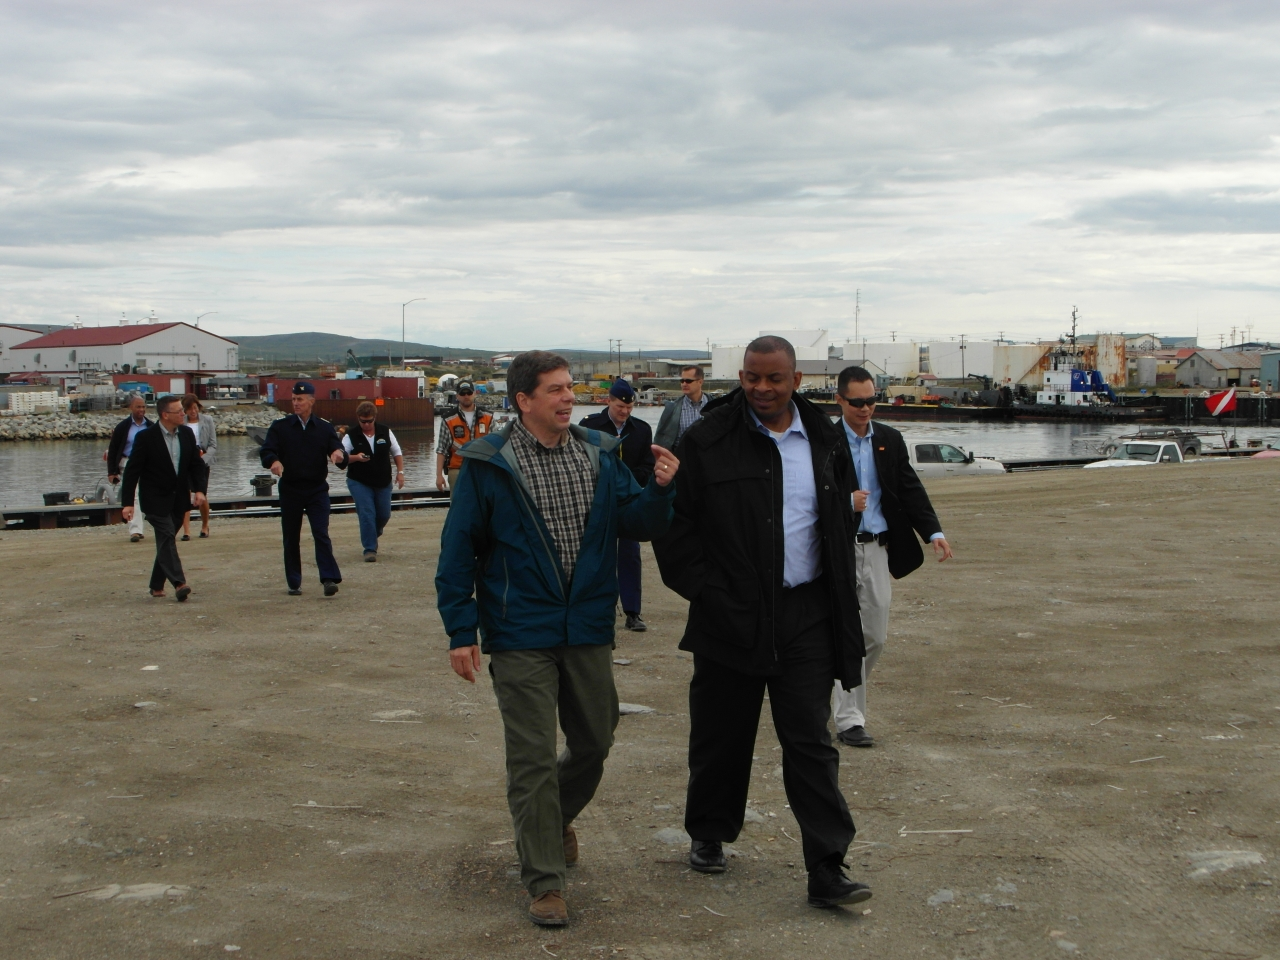 Secretary Foxx walking with Mark Begich